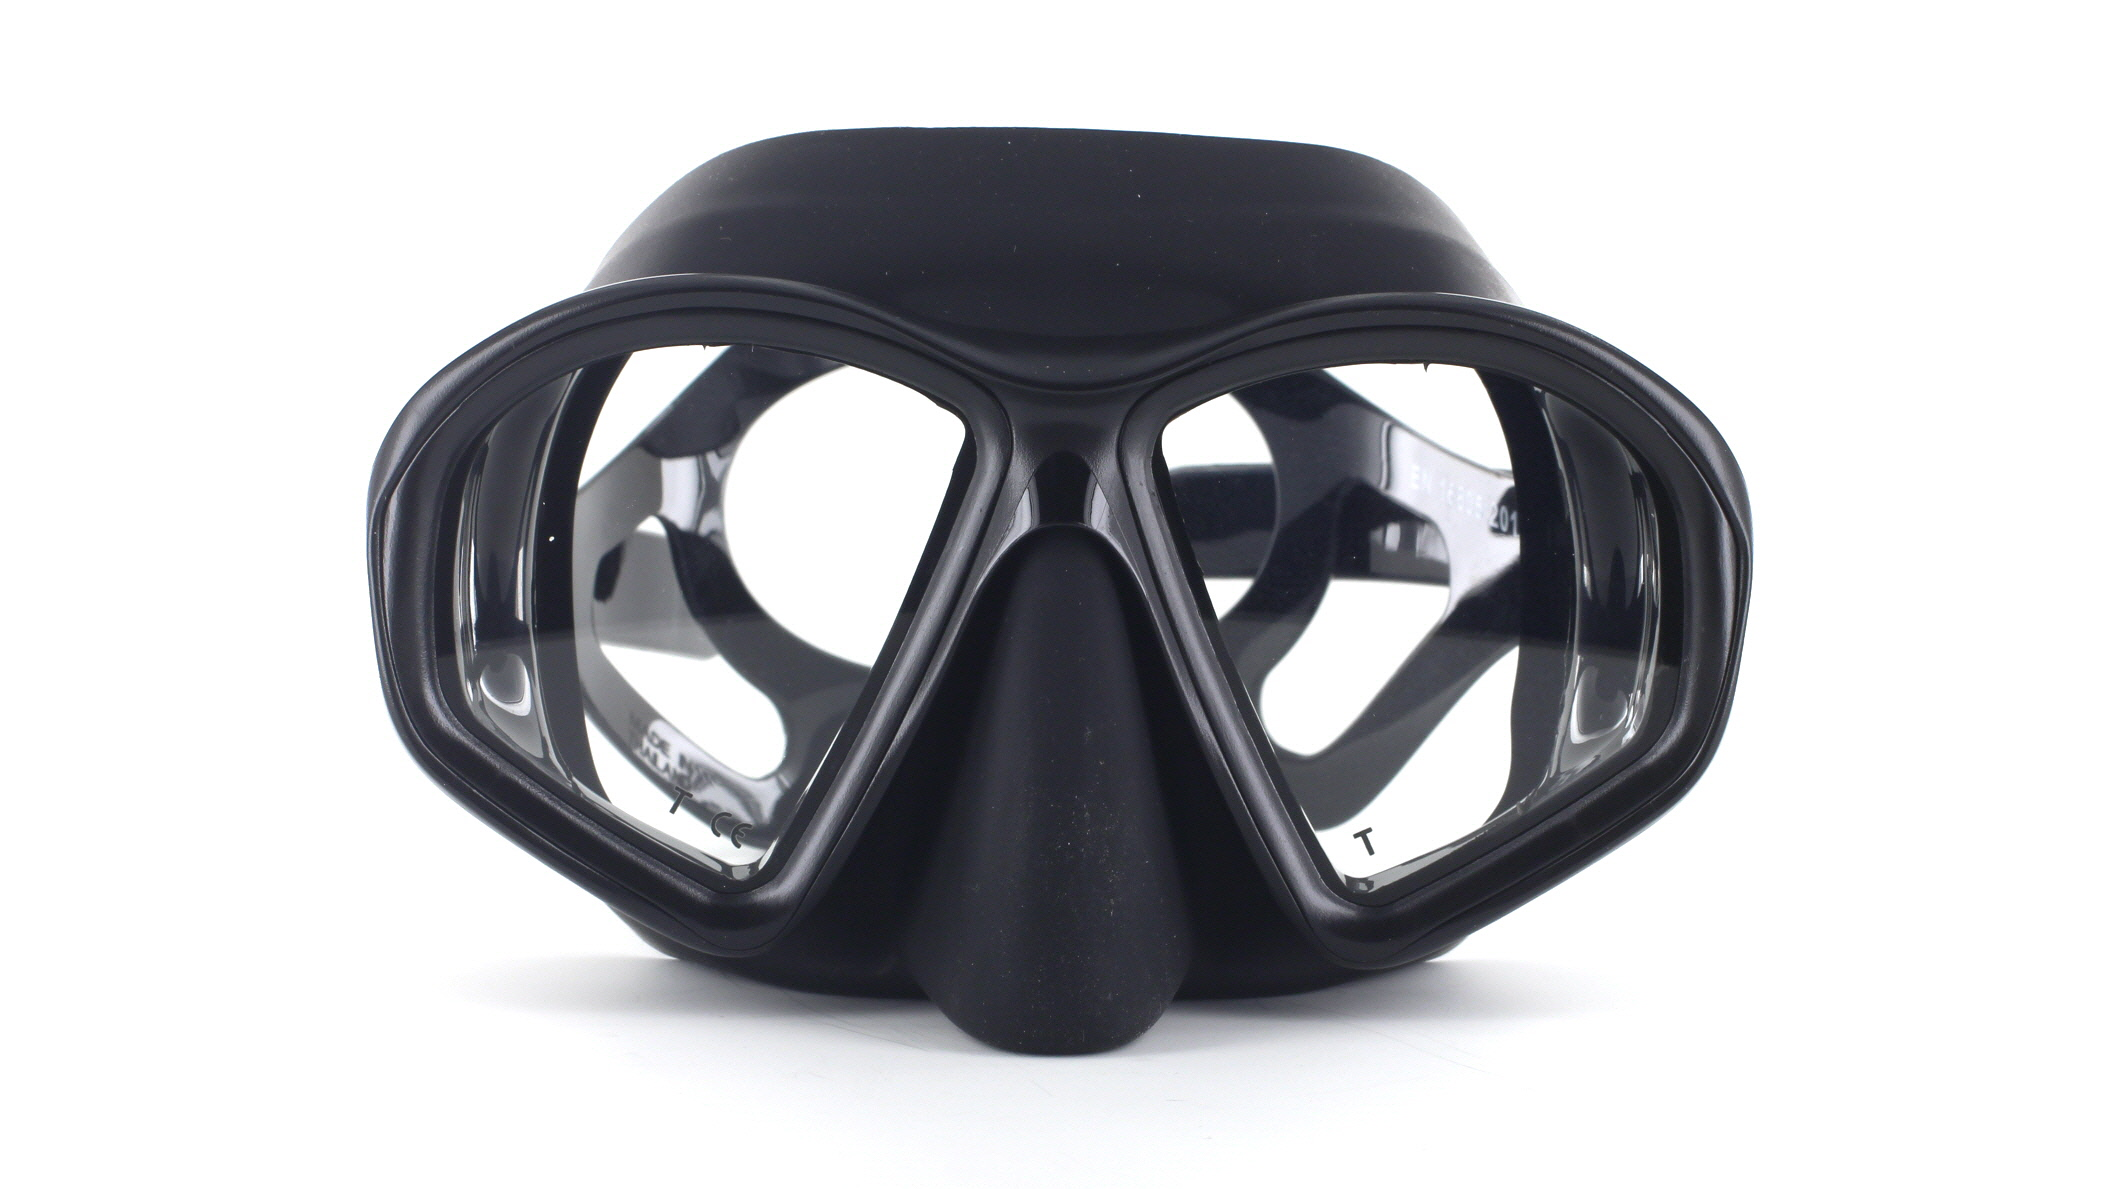 Mares Sealhouette SF - Black - Apnoe Tauchmaske Front Ansicht